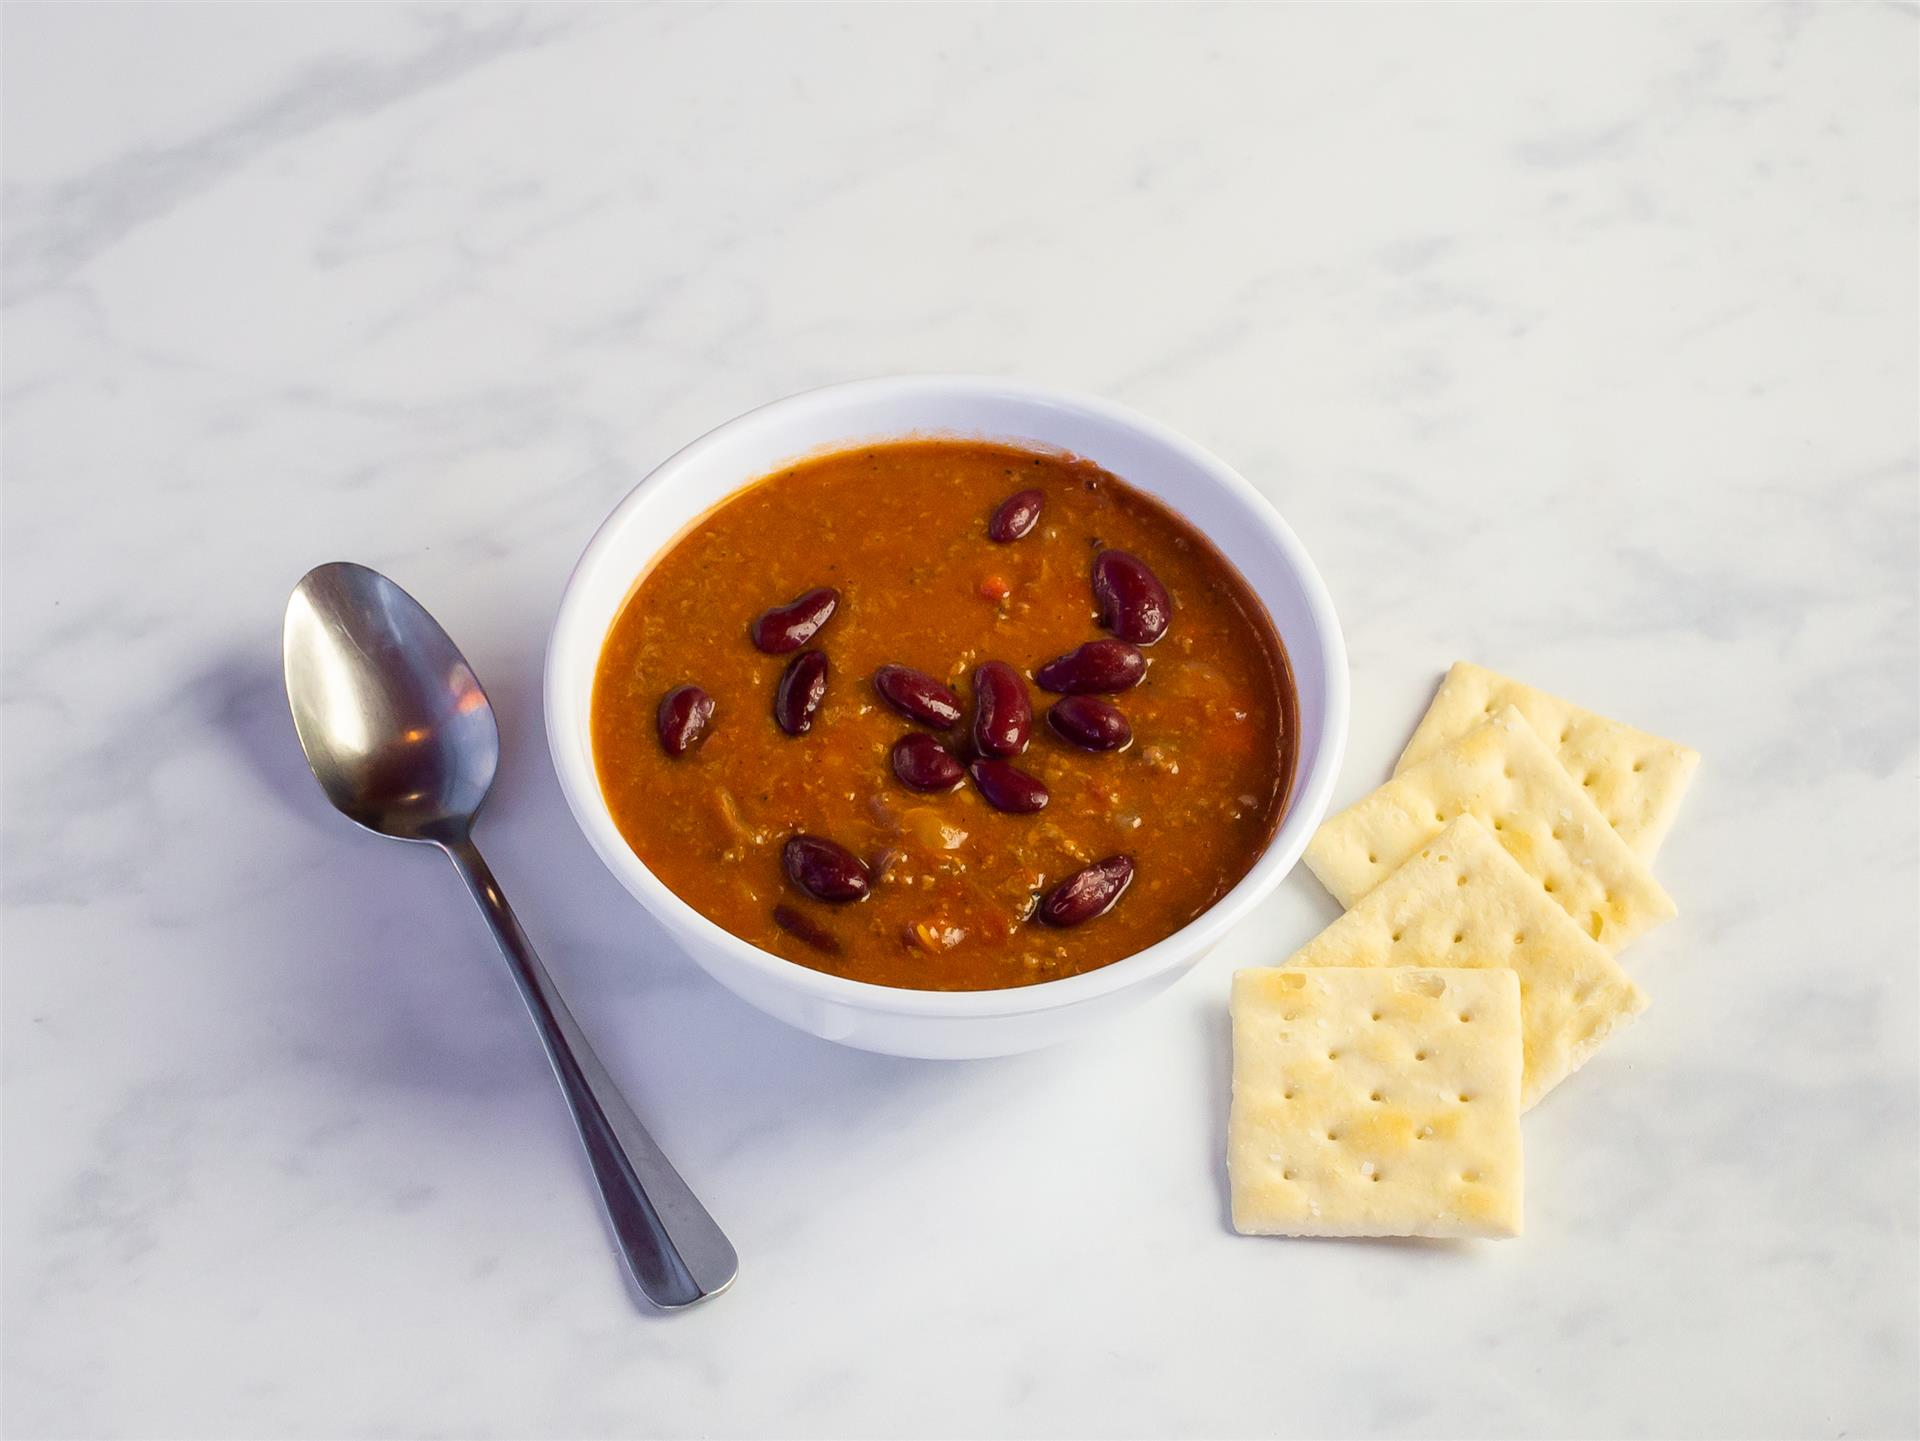 beef chili in a bowl with crackers